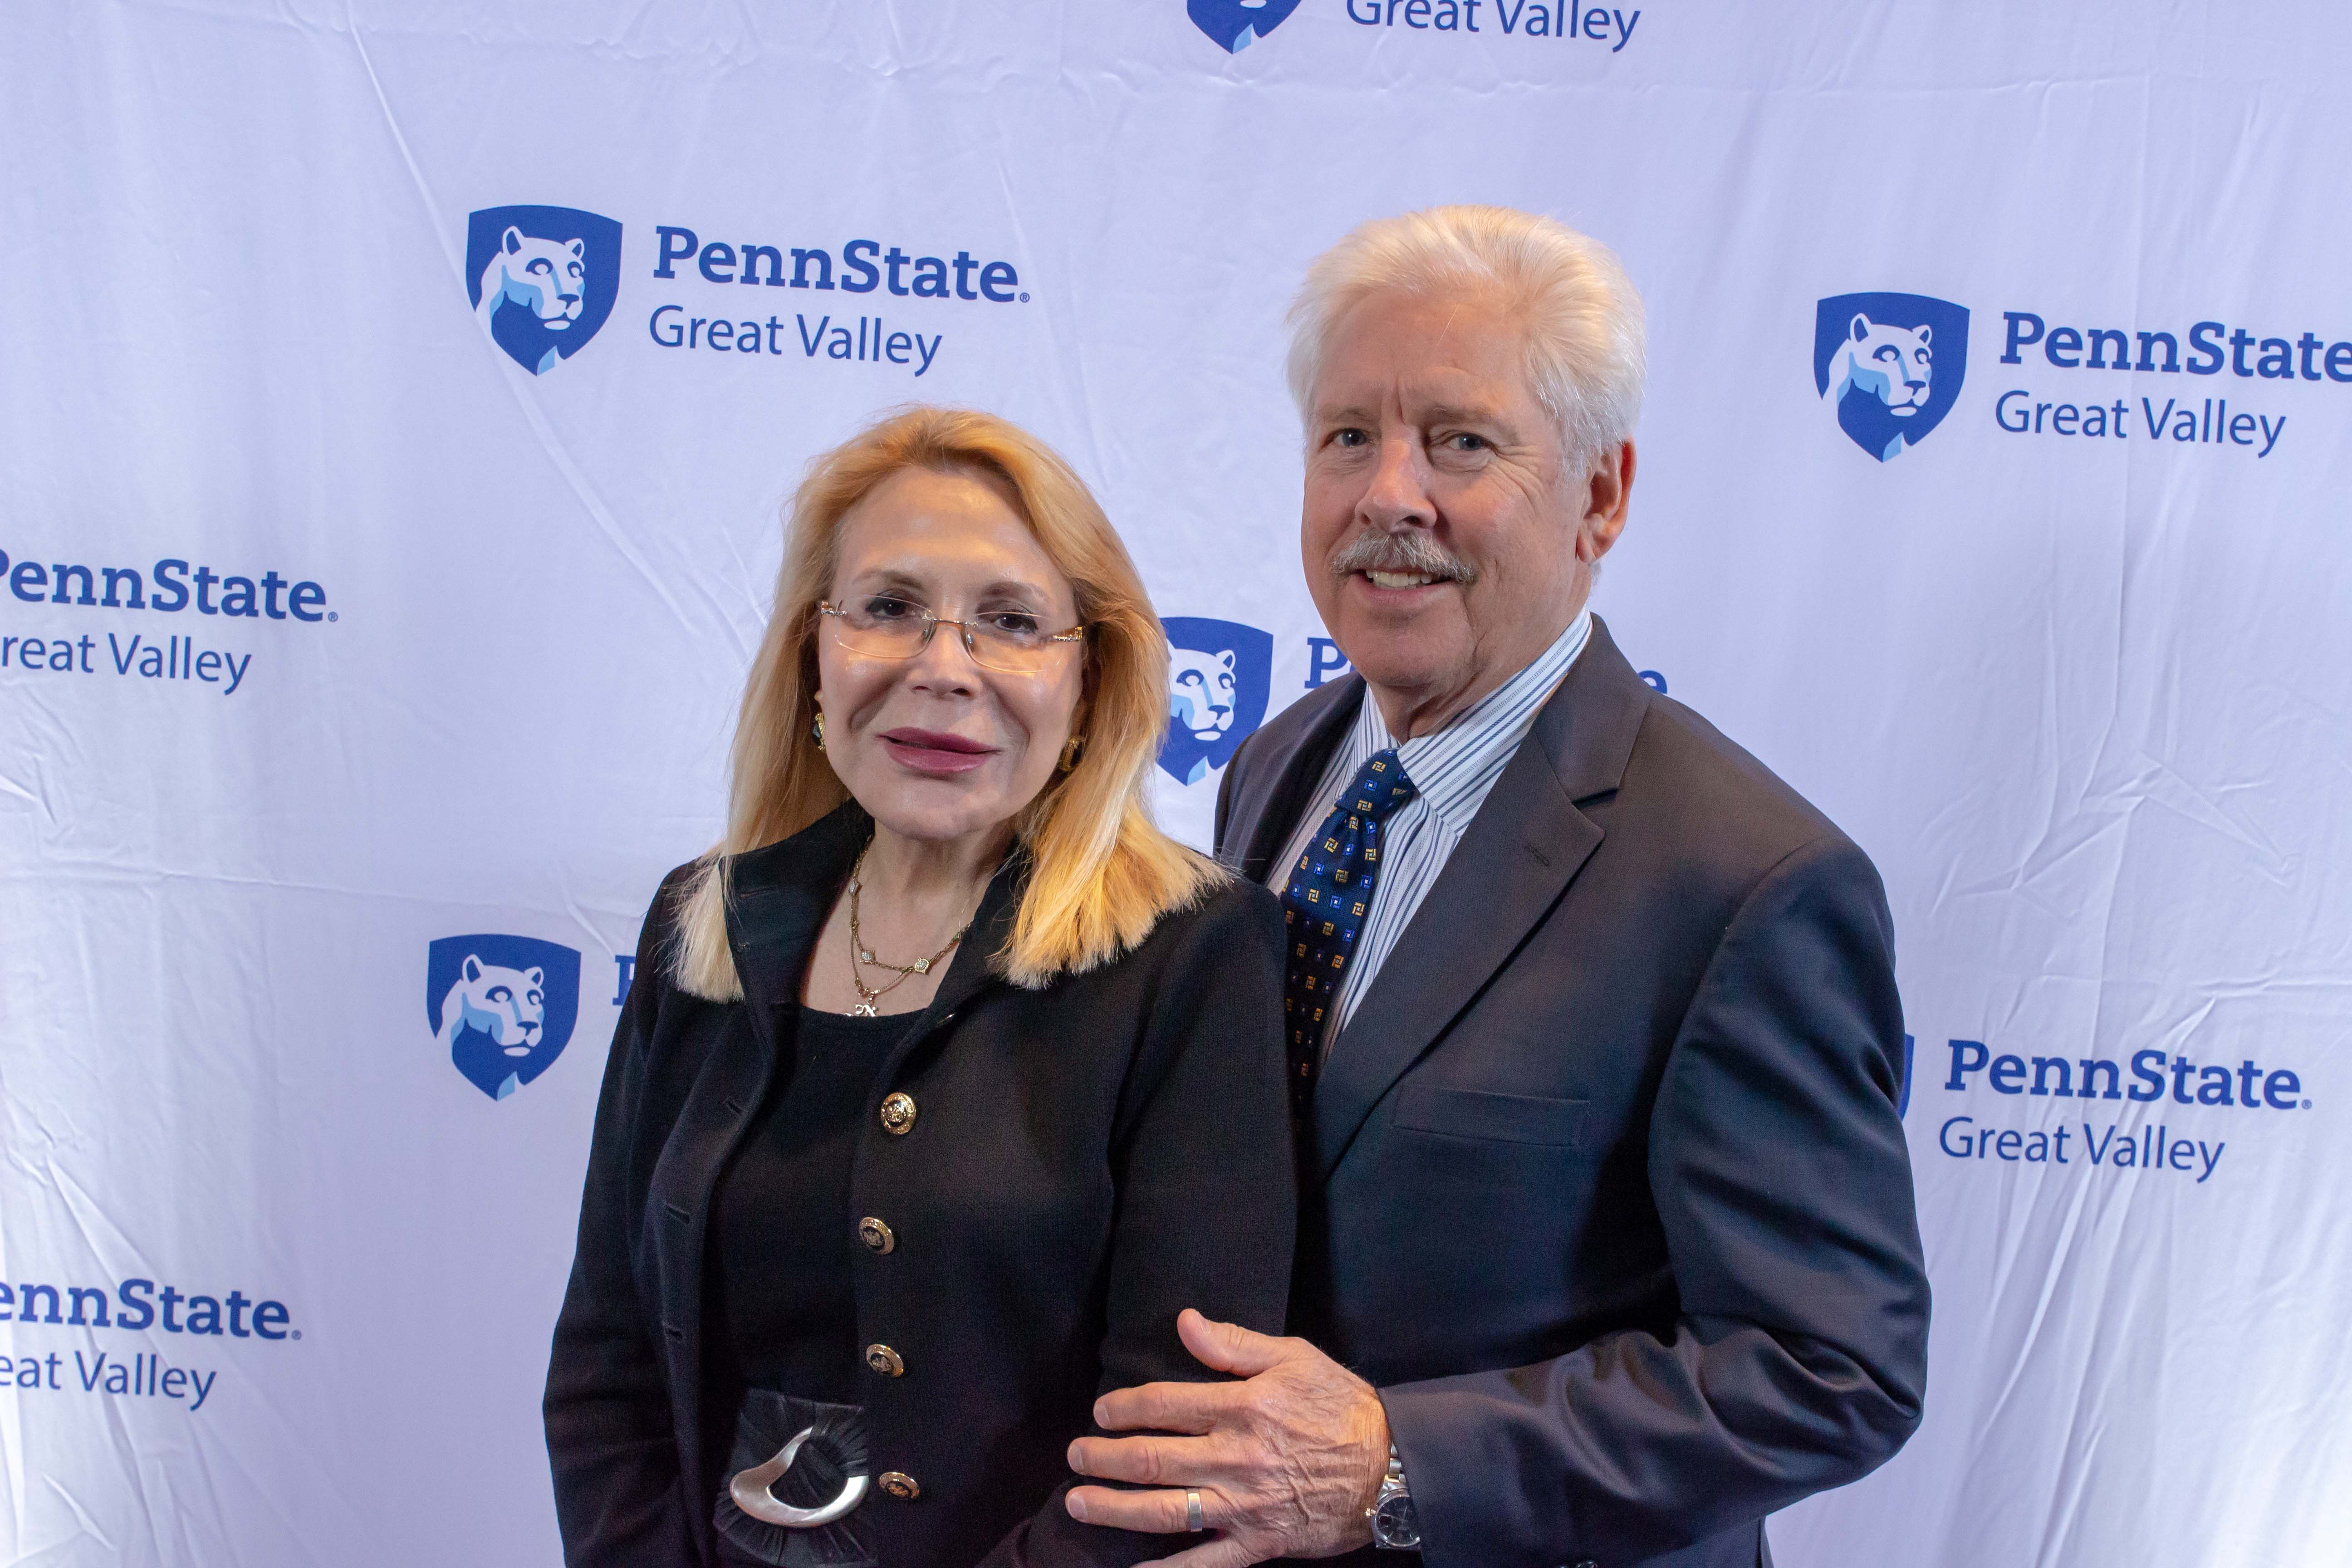 Drs. Michael and Madlyn Hanes standing in front of a Penn State Great Valley backdrop